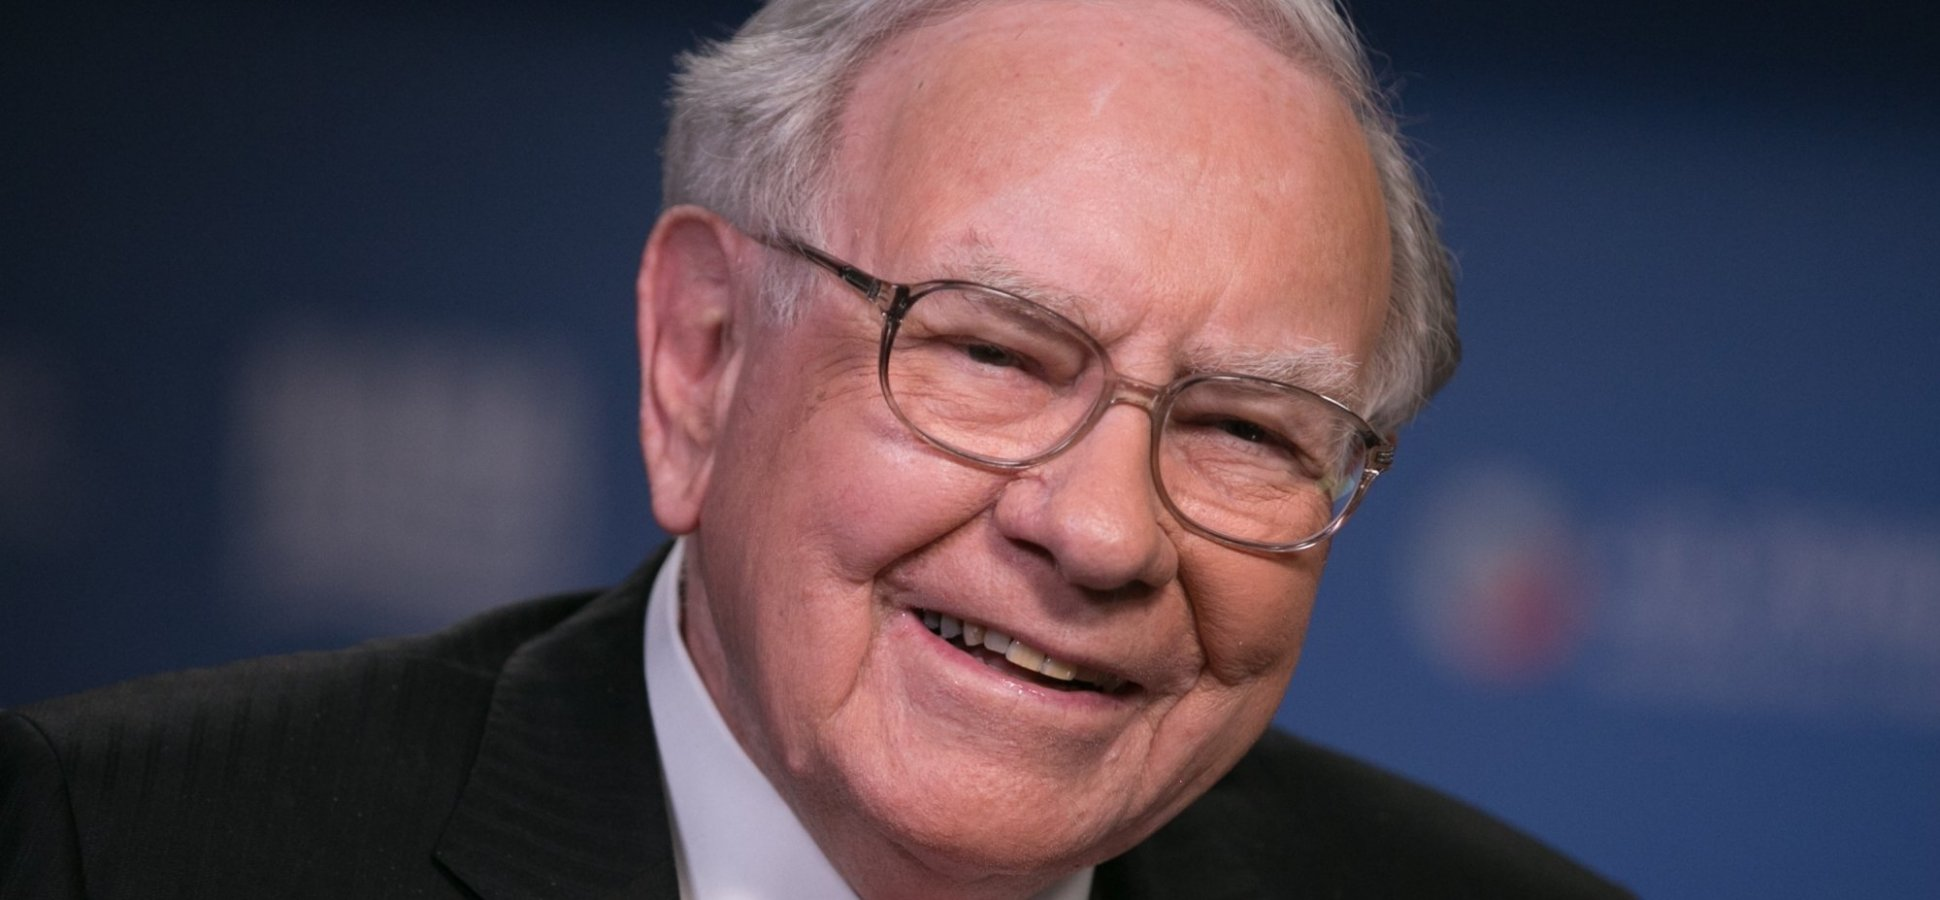 People Always Ask Warren Buffett Where They Should Go to Work. His Response Is the Best Career Advice You'll Hear Today